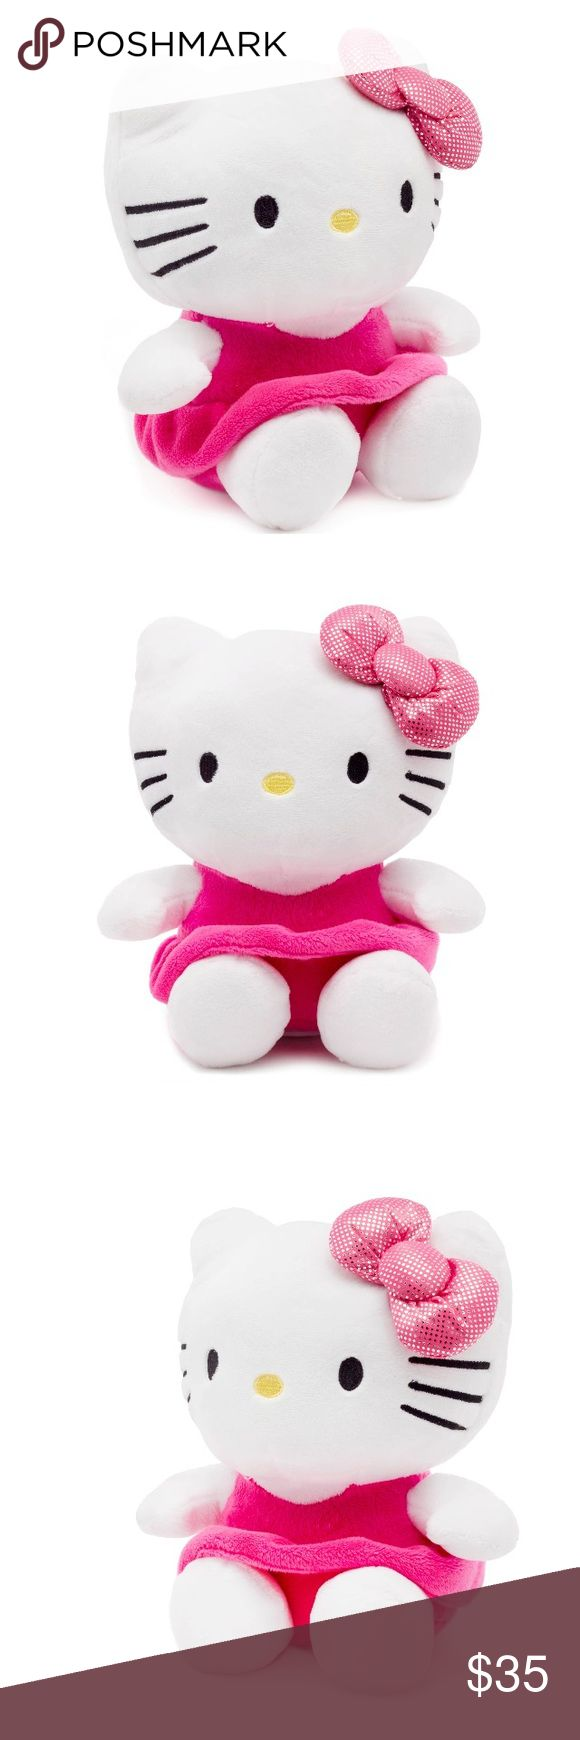 🎀Hello Kitty🎀 Coin Bank Get your little one excited about saving money with the Hello Kitty Piggy Bank. It features a coin slot on the back for easy insertions. The plastic stopper at the bottom allows it to be placed safely on a flat surface. For added cuteness, the Hello kitty wears a pink dress and a cute bow. This plush piggy bank will not only let your little princess' save money, but will also make for a decorative piece in her room. Hello Kitty Accessories